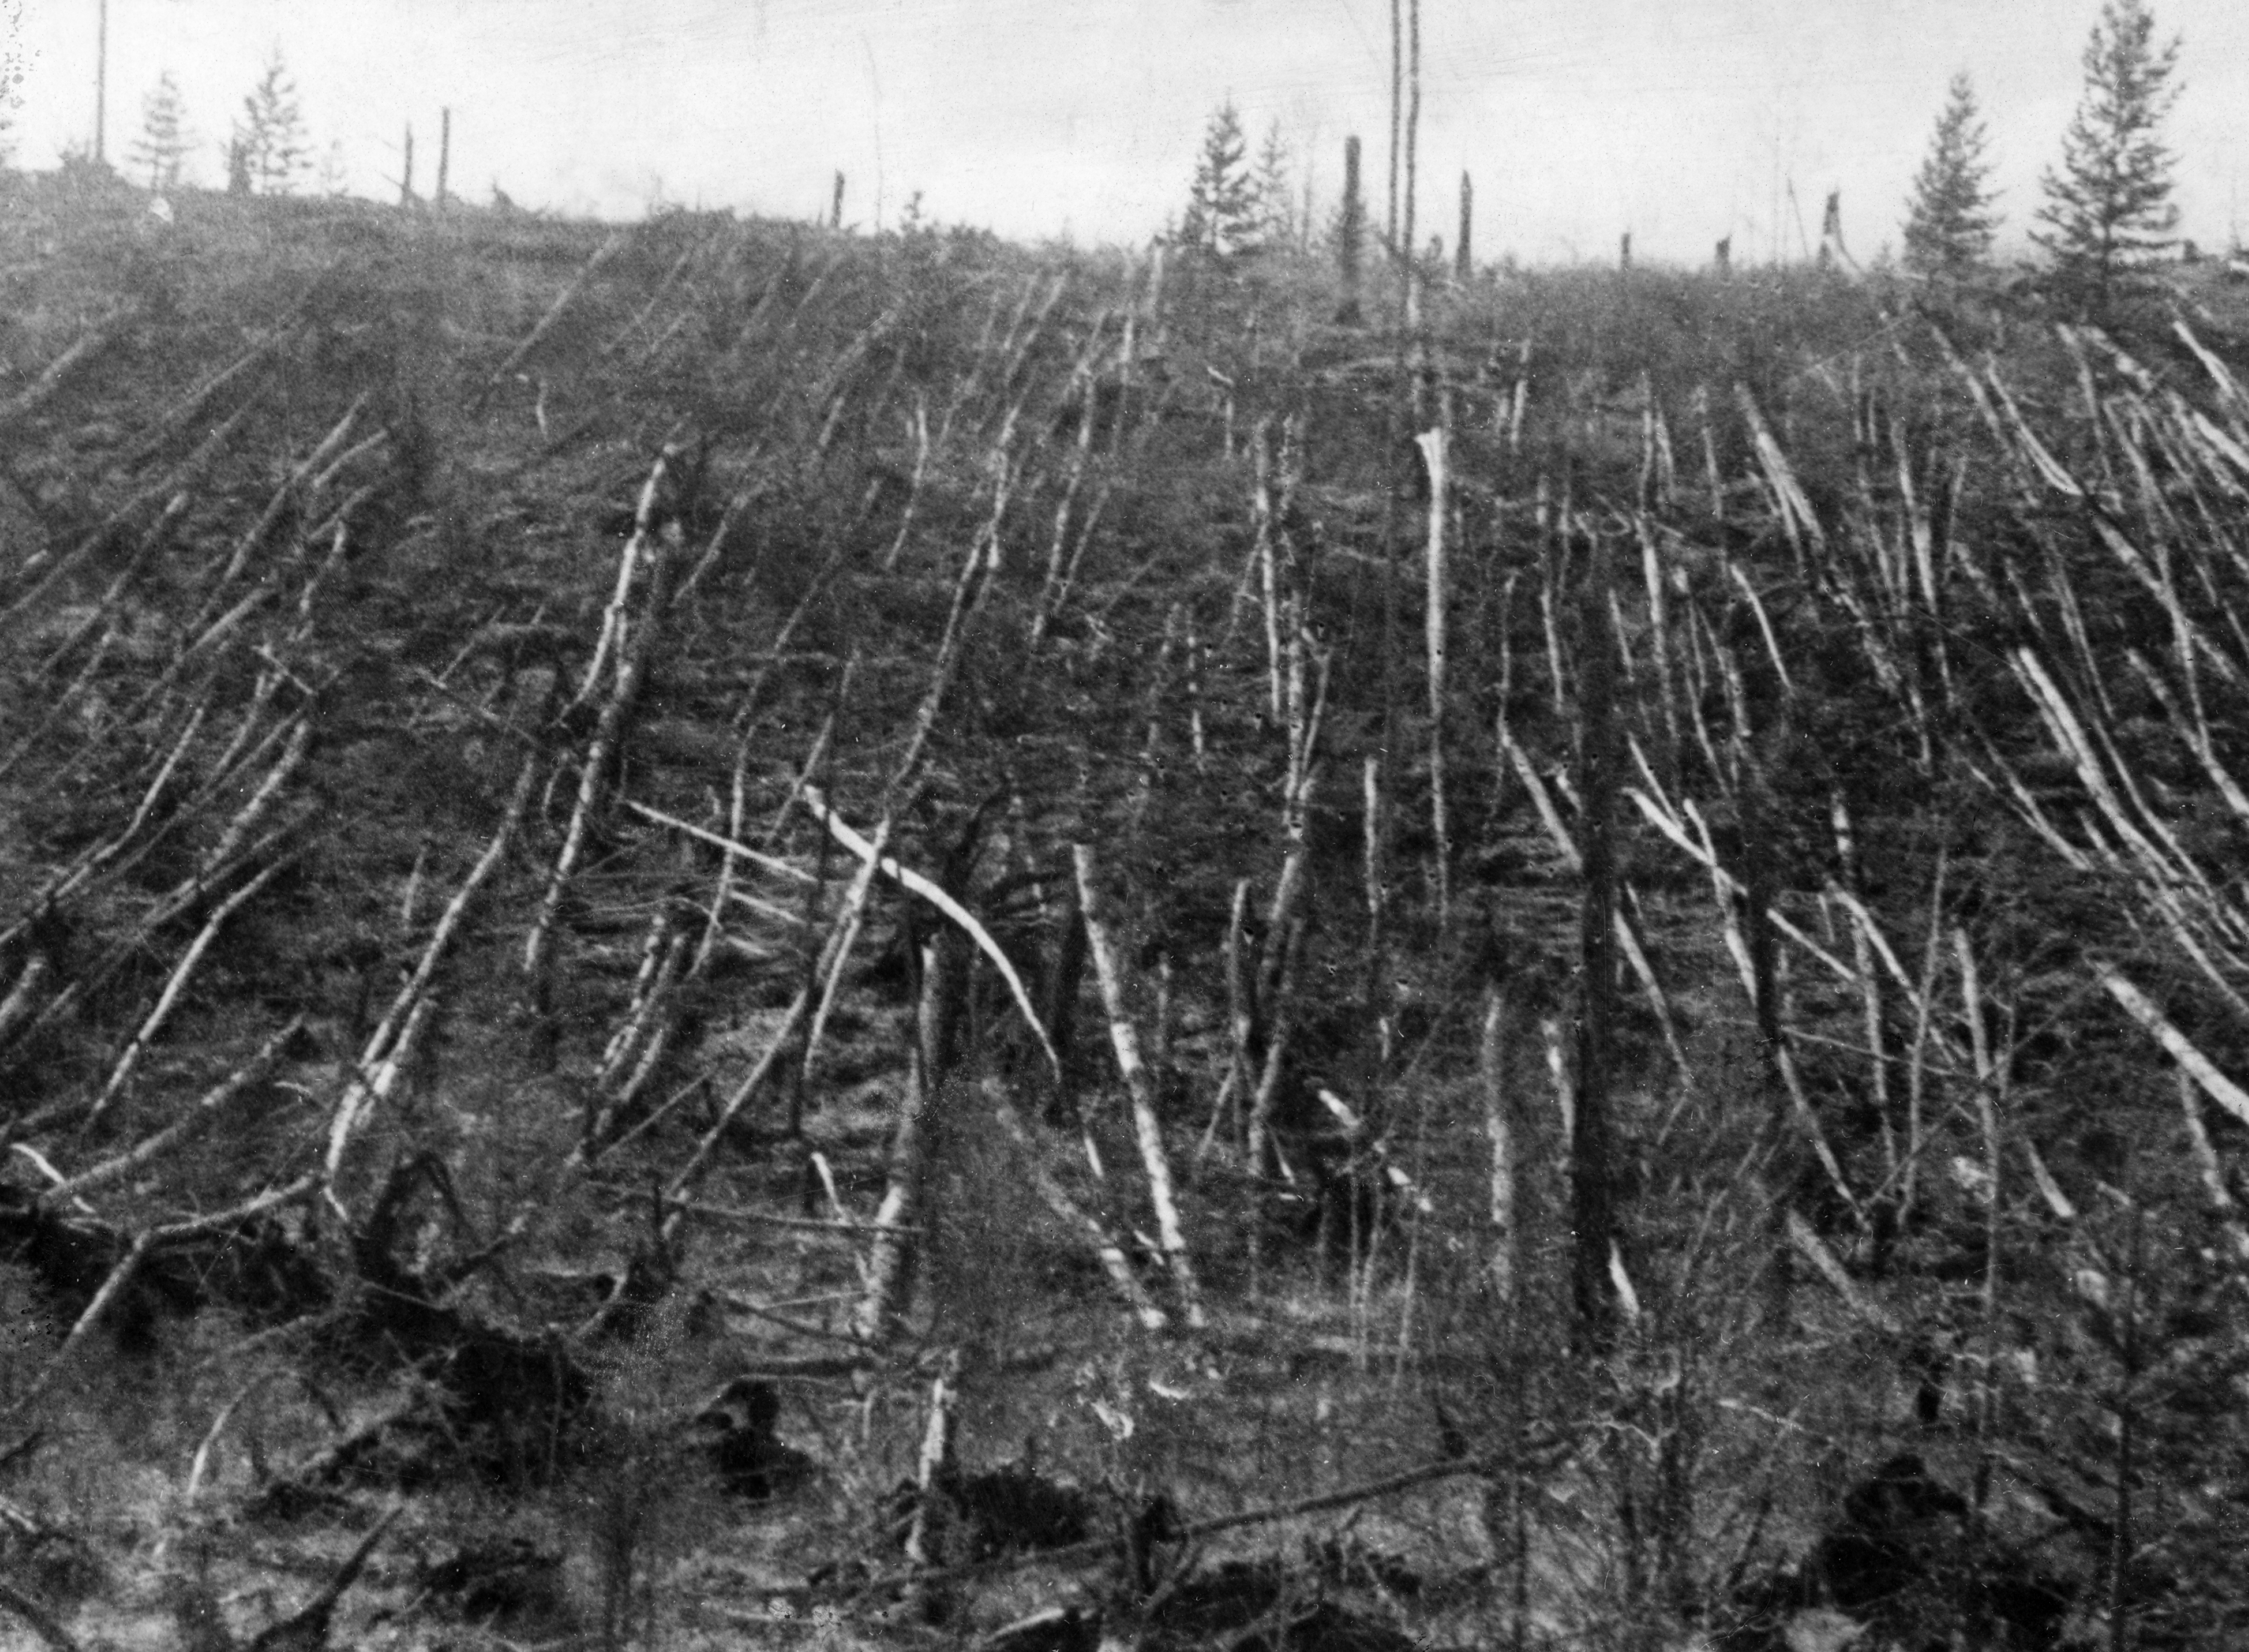 Siberian taiga forest that was flattened by the blast from the tunguska meteorite near where the meteorite fell in 1908, this picture was taken during professor leonid kulik's 1938 expedition to investigate the event. (Photo by: Sovfoto/Universal Images Group via Getty Images)